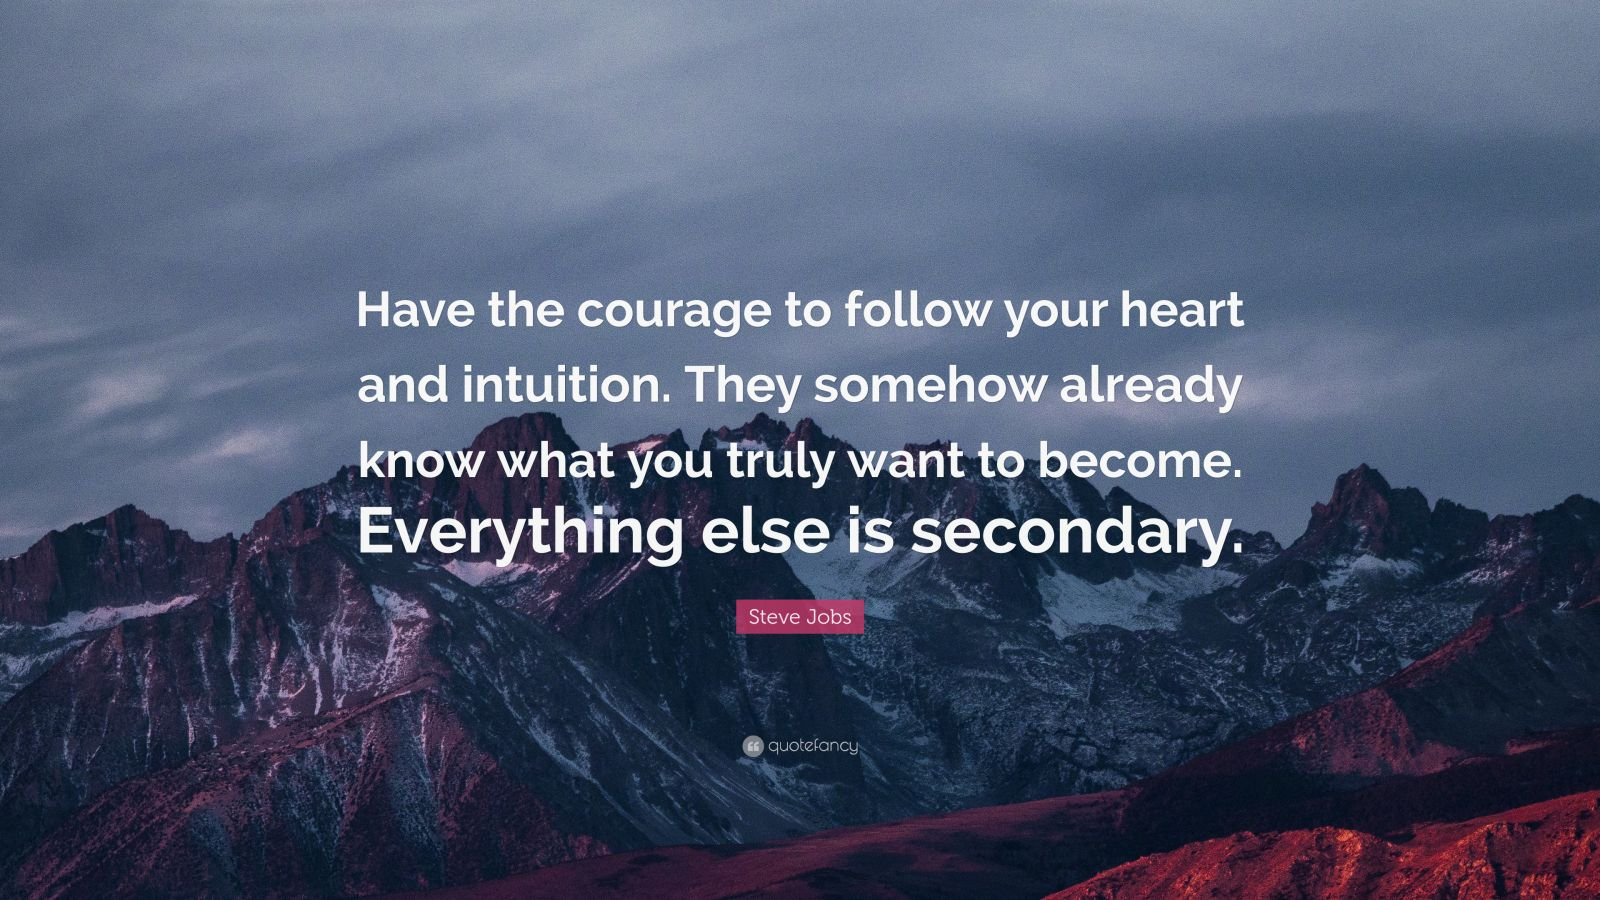 Steve Jobs Quote Have The Courage To Follow Your Heart And Intuition They Somehow Already